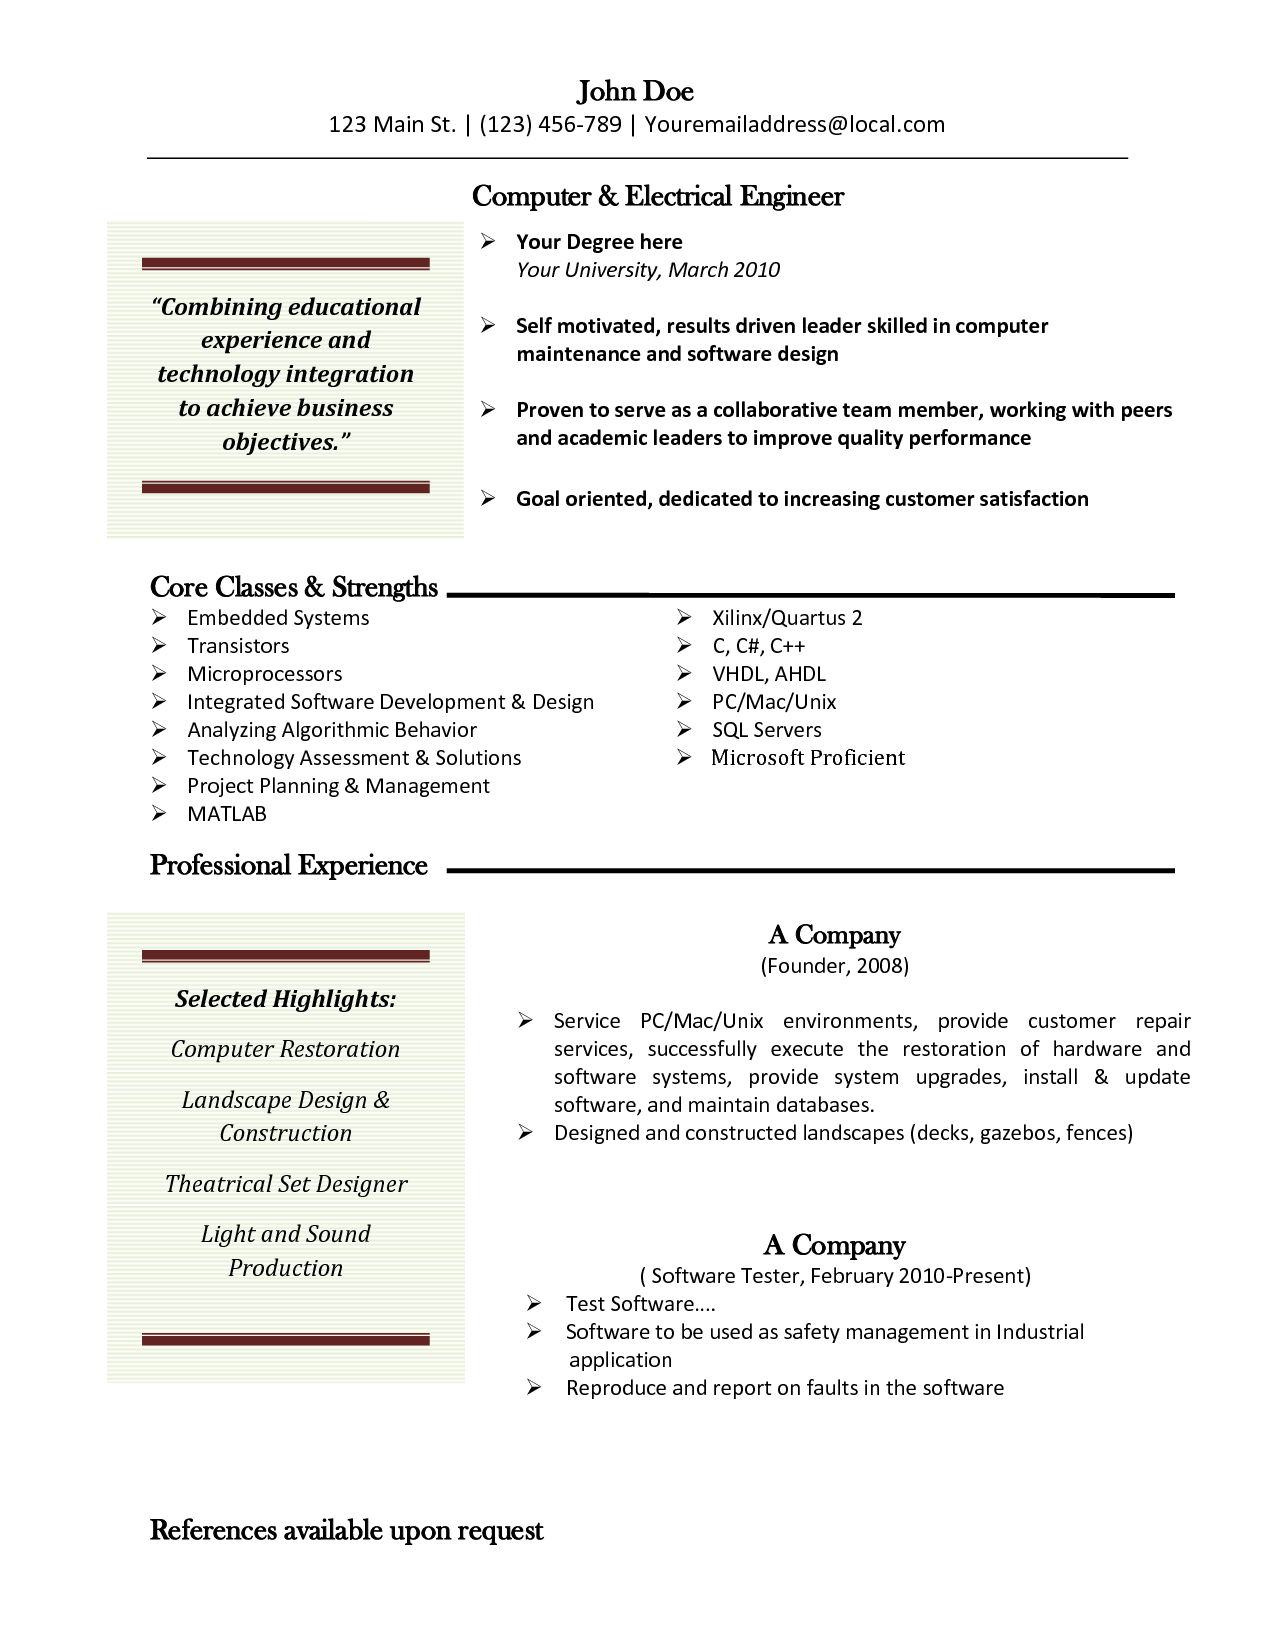 Free Resume Templates For Download Endearing Freeresumetemplatesformaccqjykibi 1275×1650  Cv